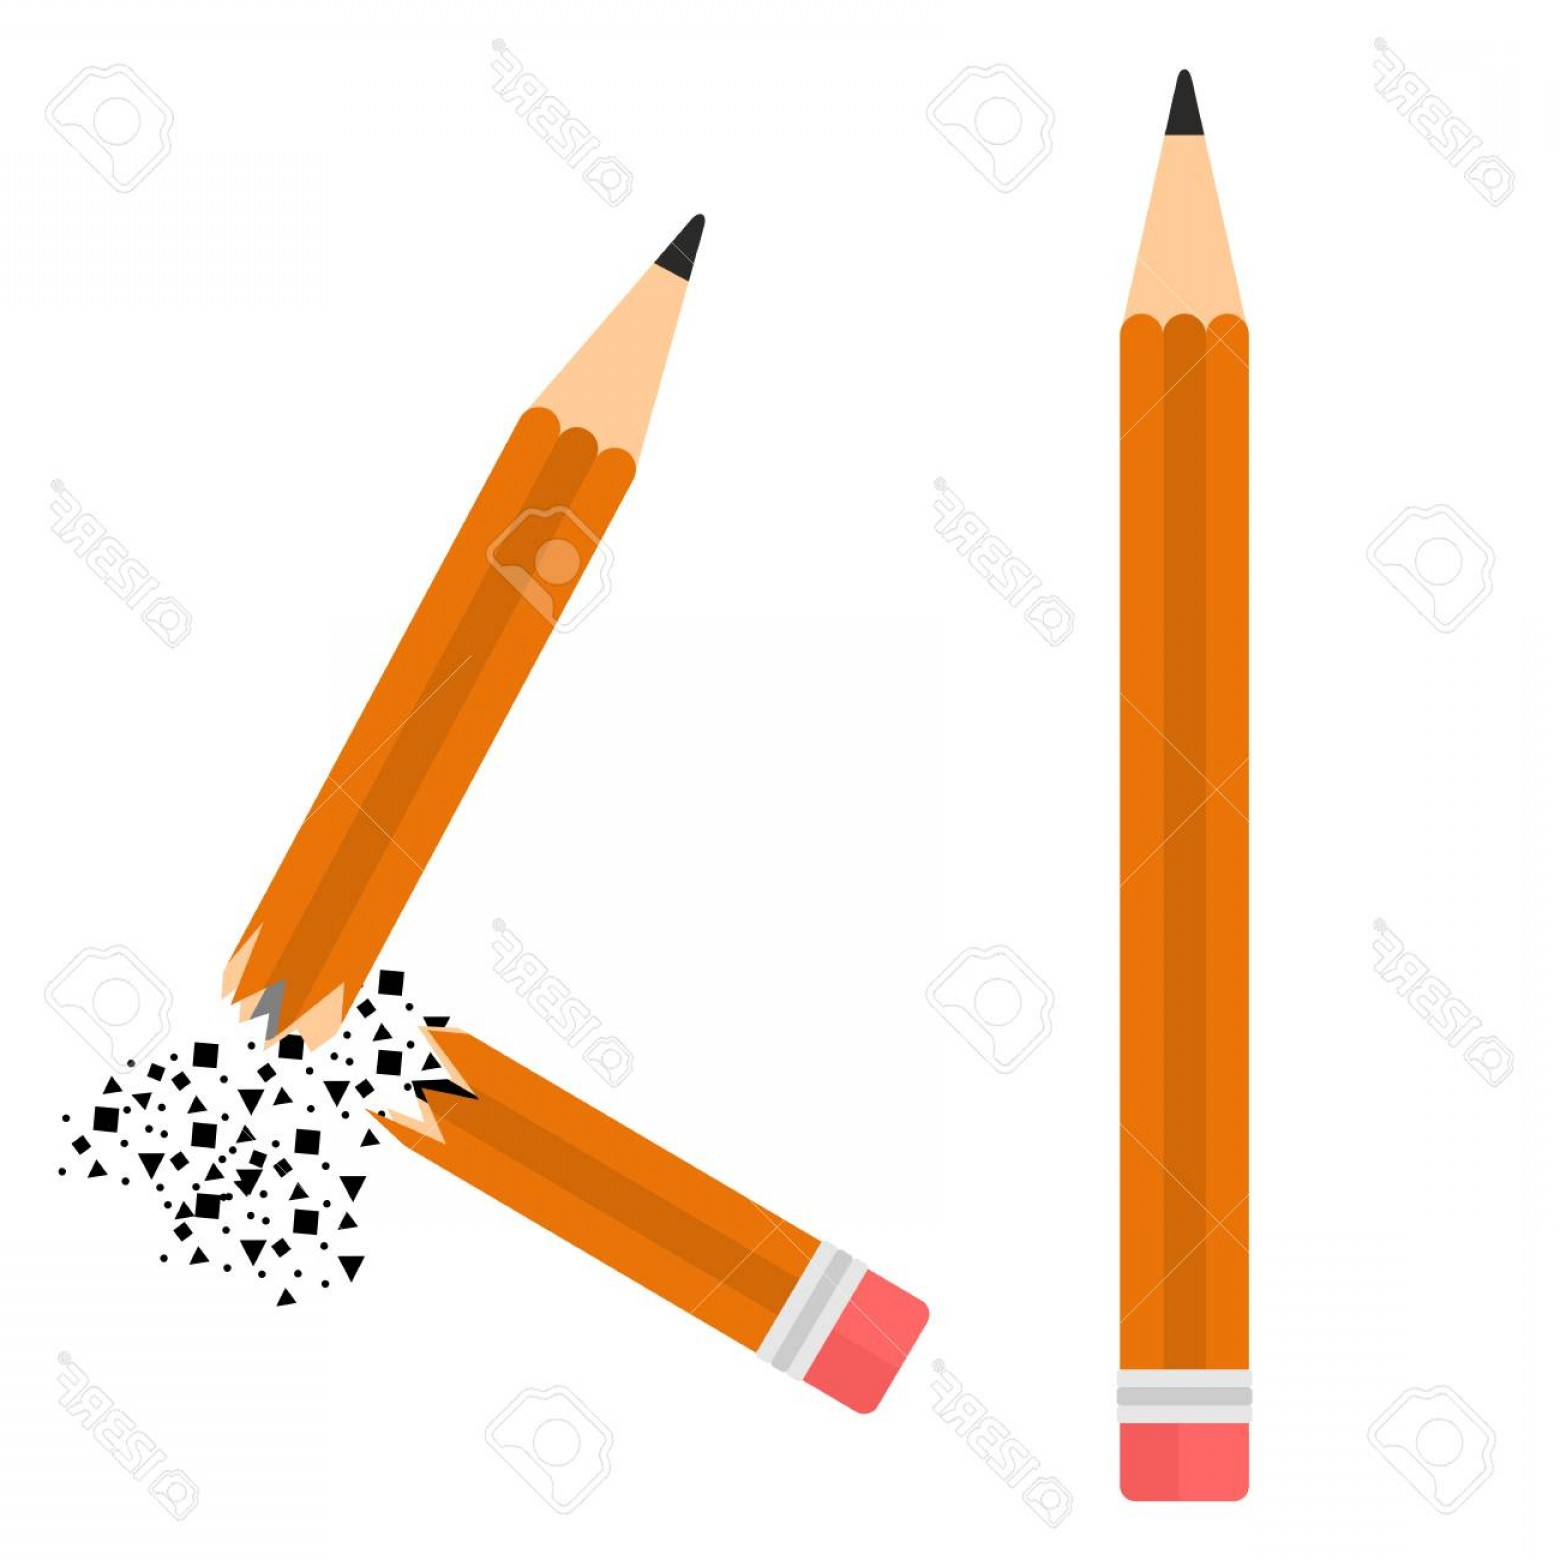 Broken Pencil Vector: Photostock Vector Two Pencil Image Flat Whole And Broken Pencil Vector Cartoon Illustration Objects Isolated On A Whit